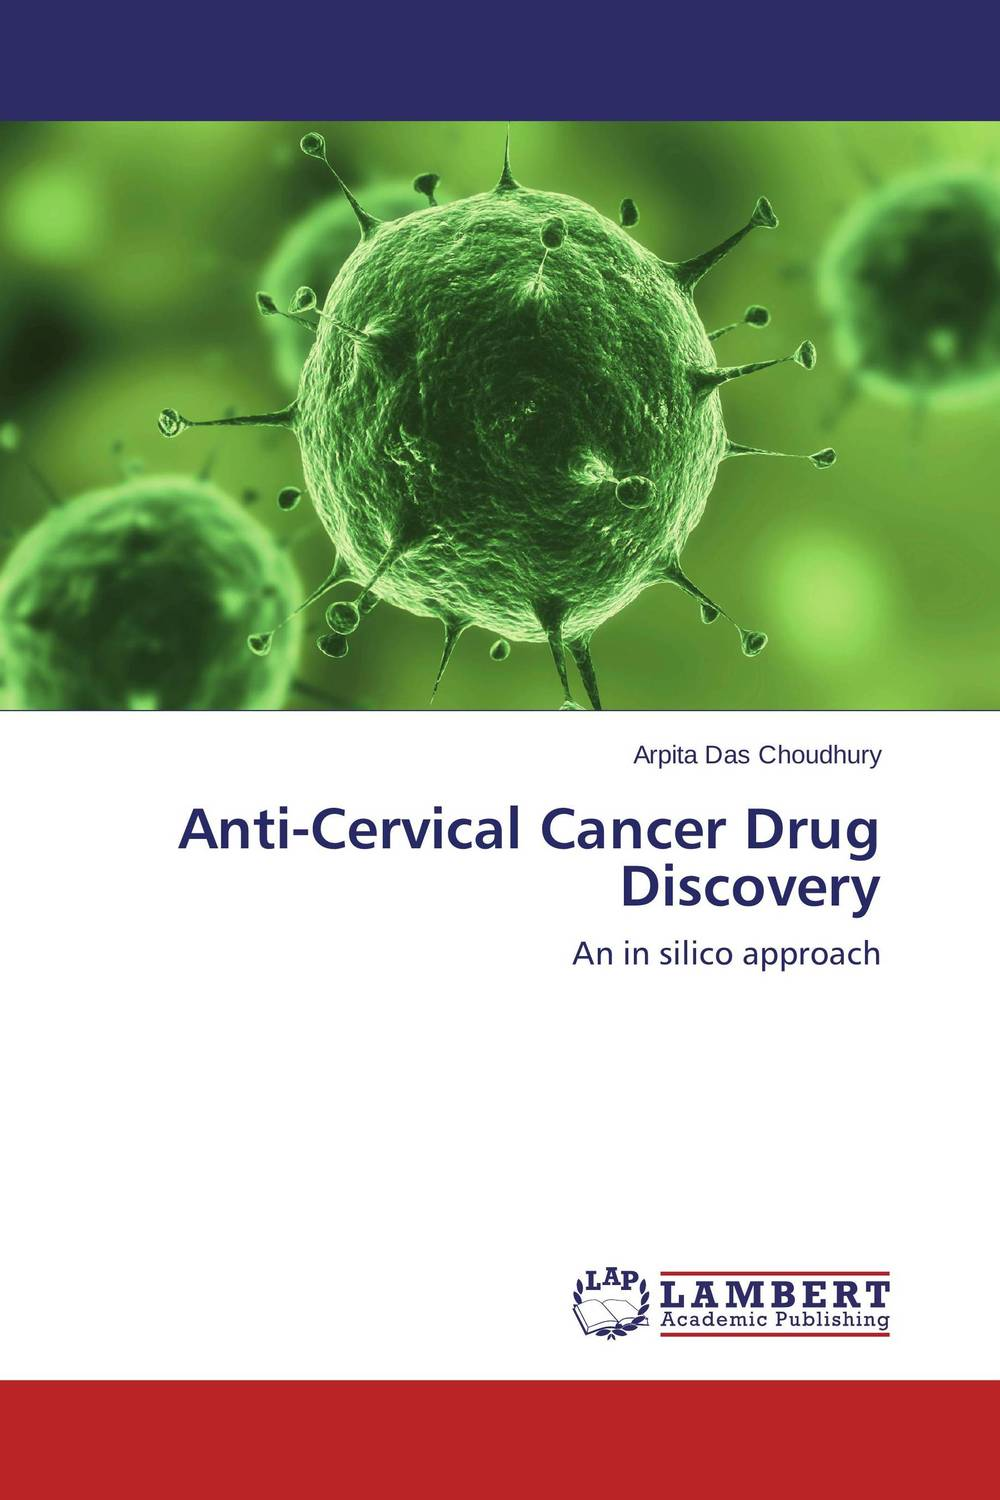 Anti-Cervical Cancer Drug Discovery late stage diagnosis of cervical cancer